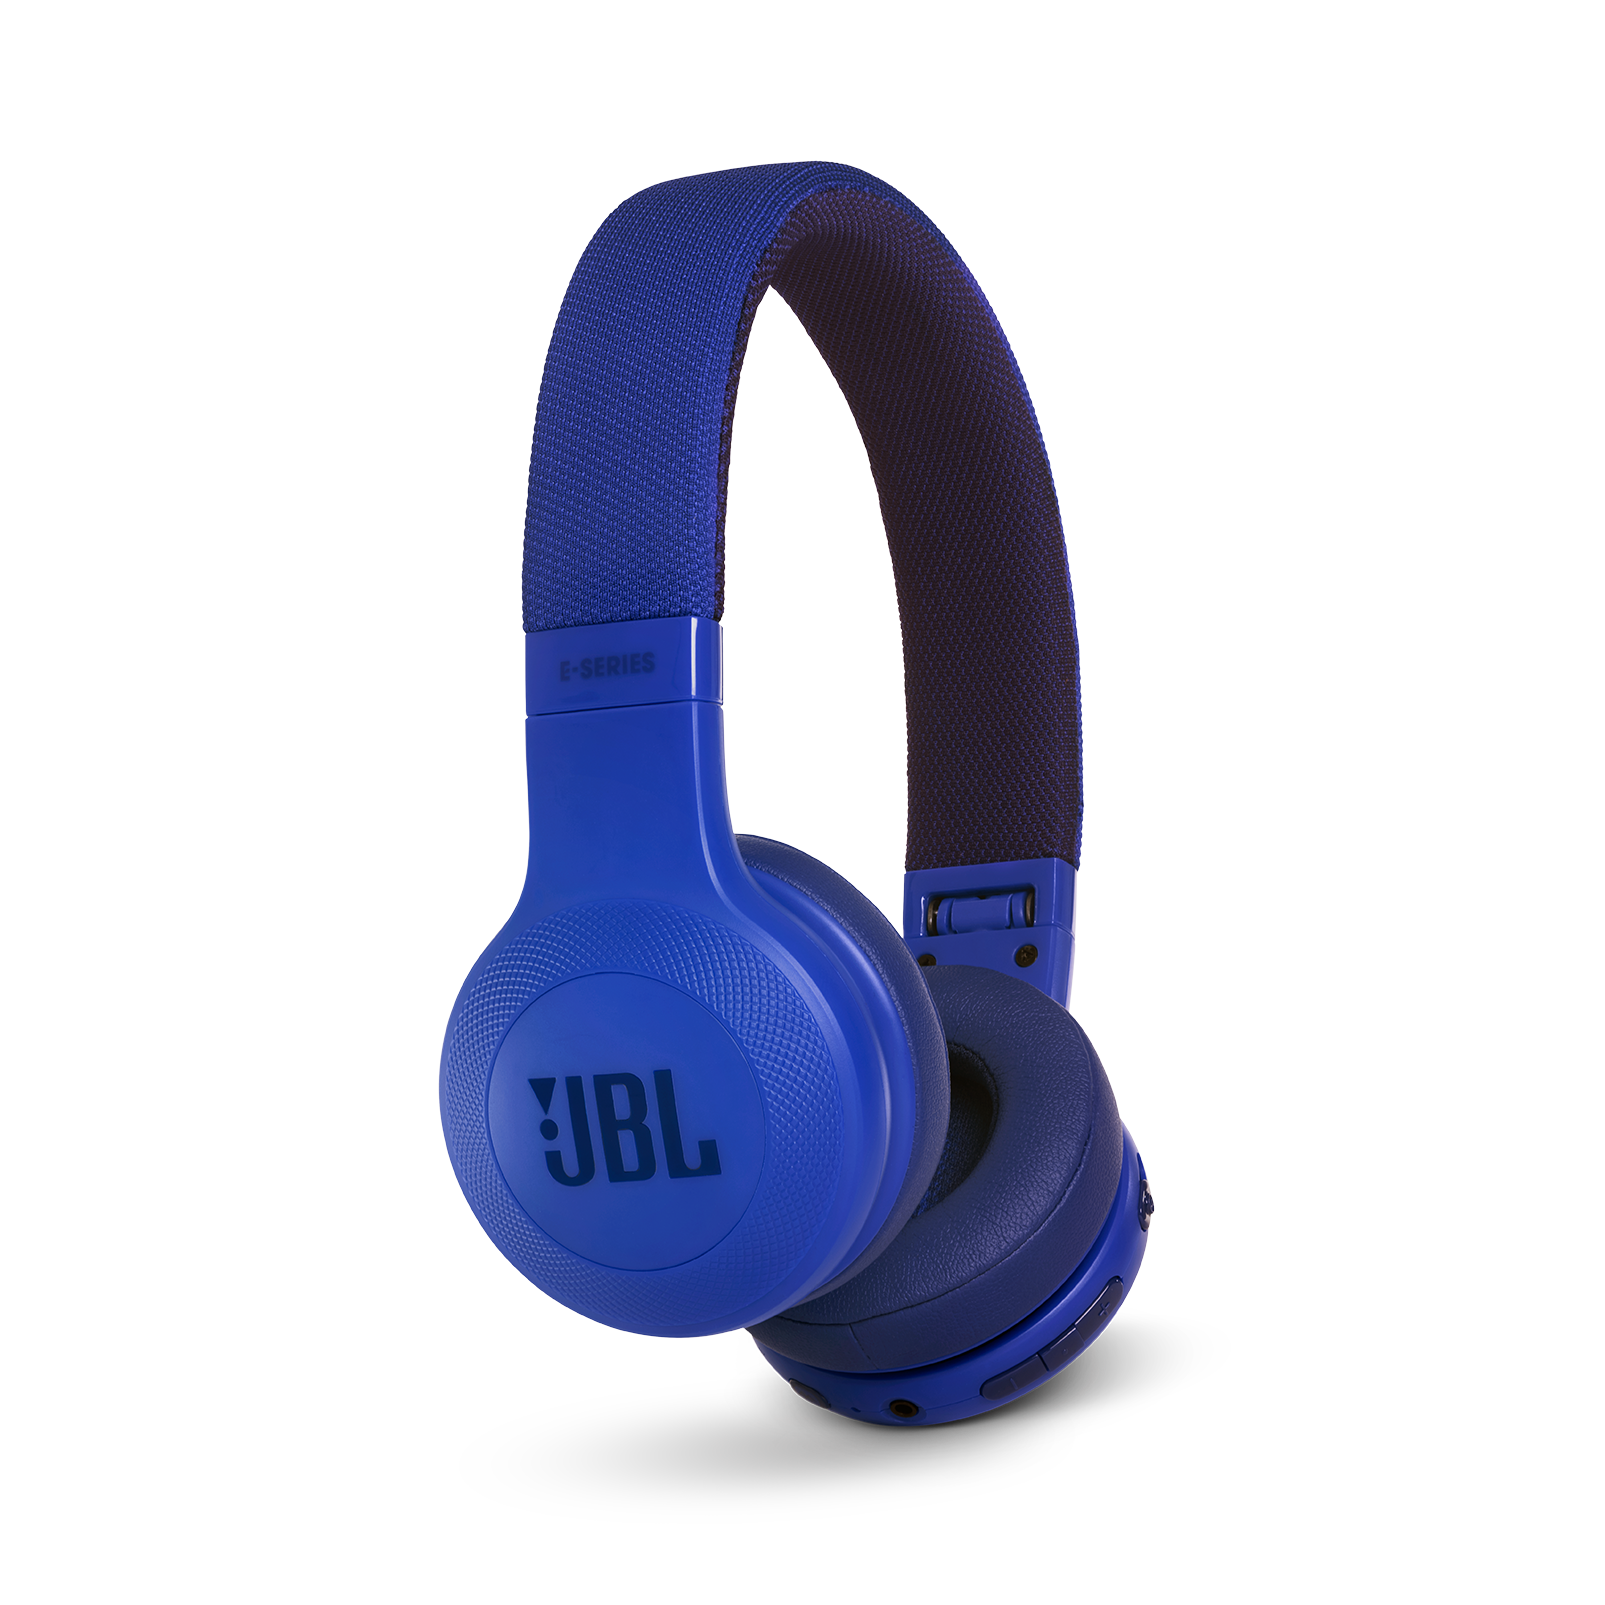 JBL E45BT - Blue - Wireless on-ear headphones - Detailshot 2